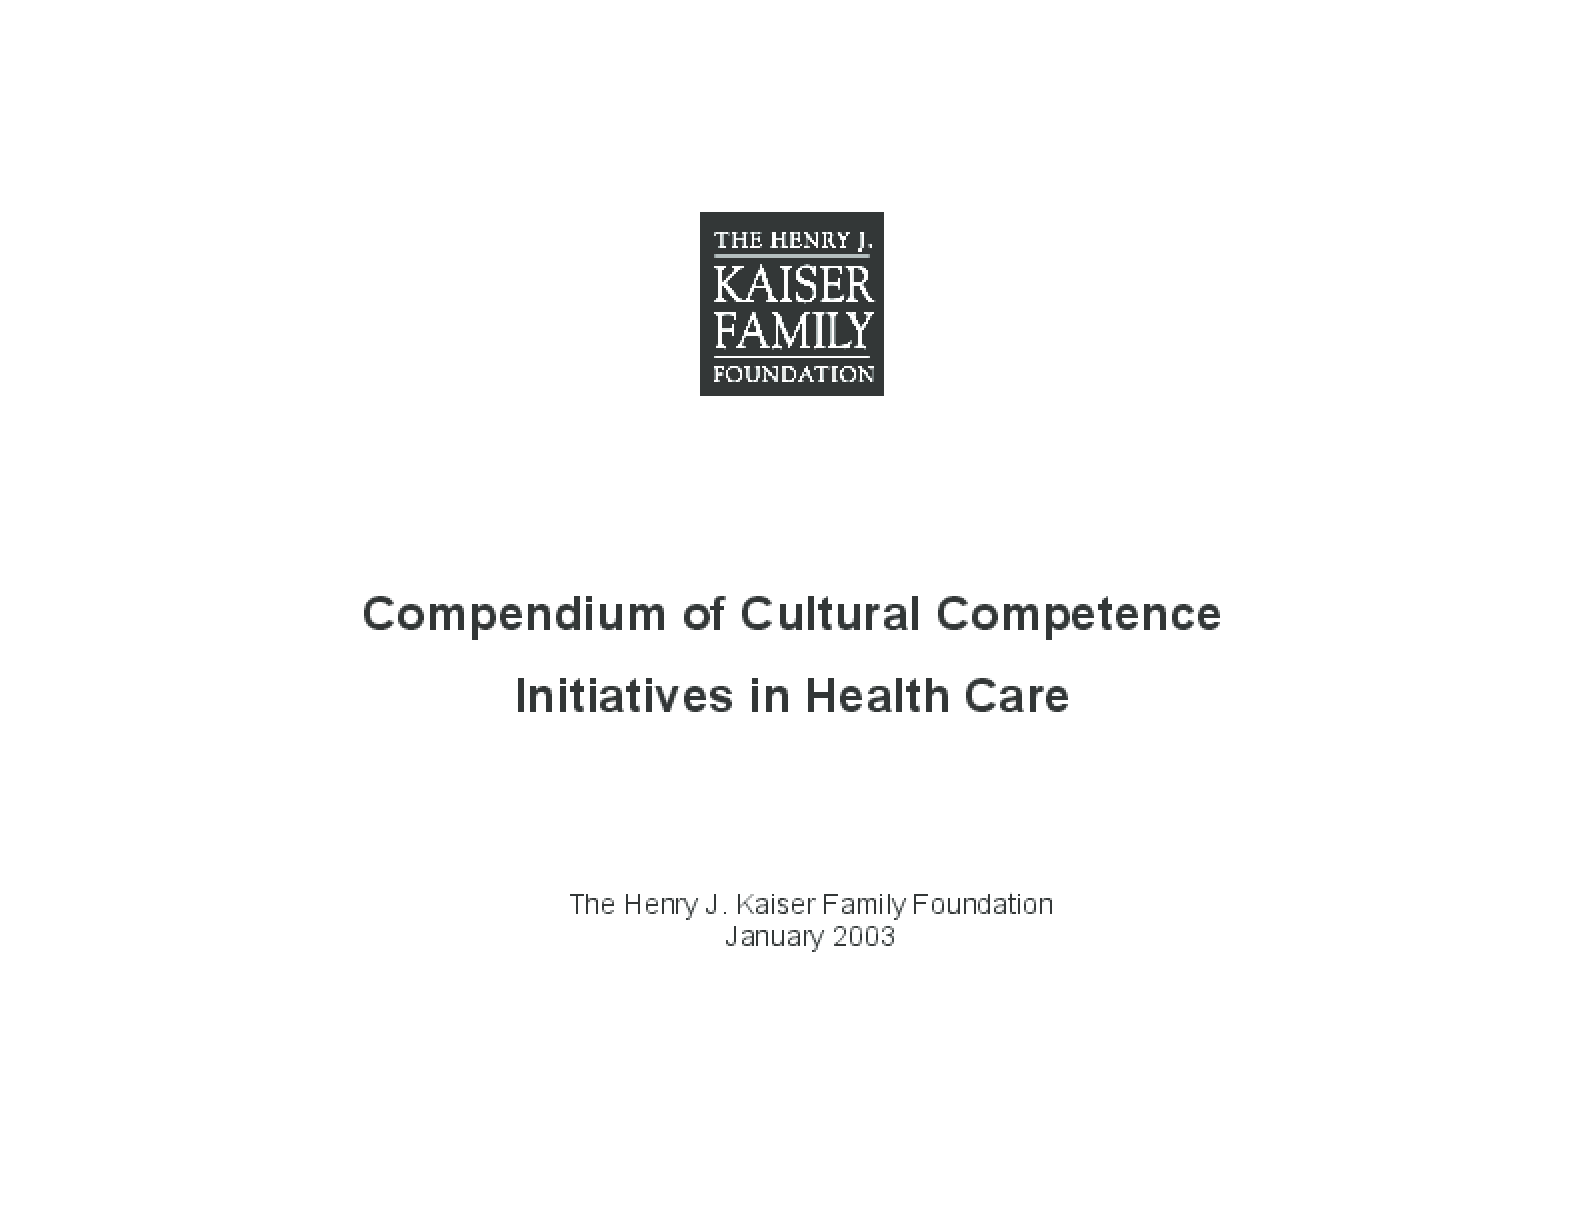 Compendium of Cultural Competence Initiatives in Health Care